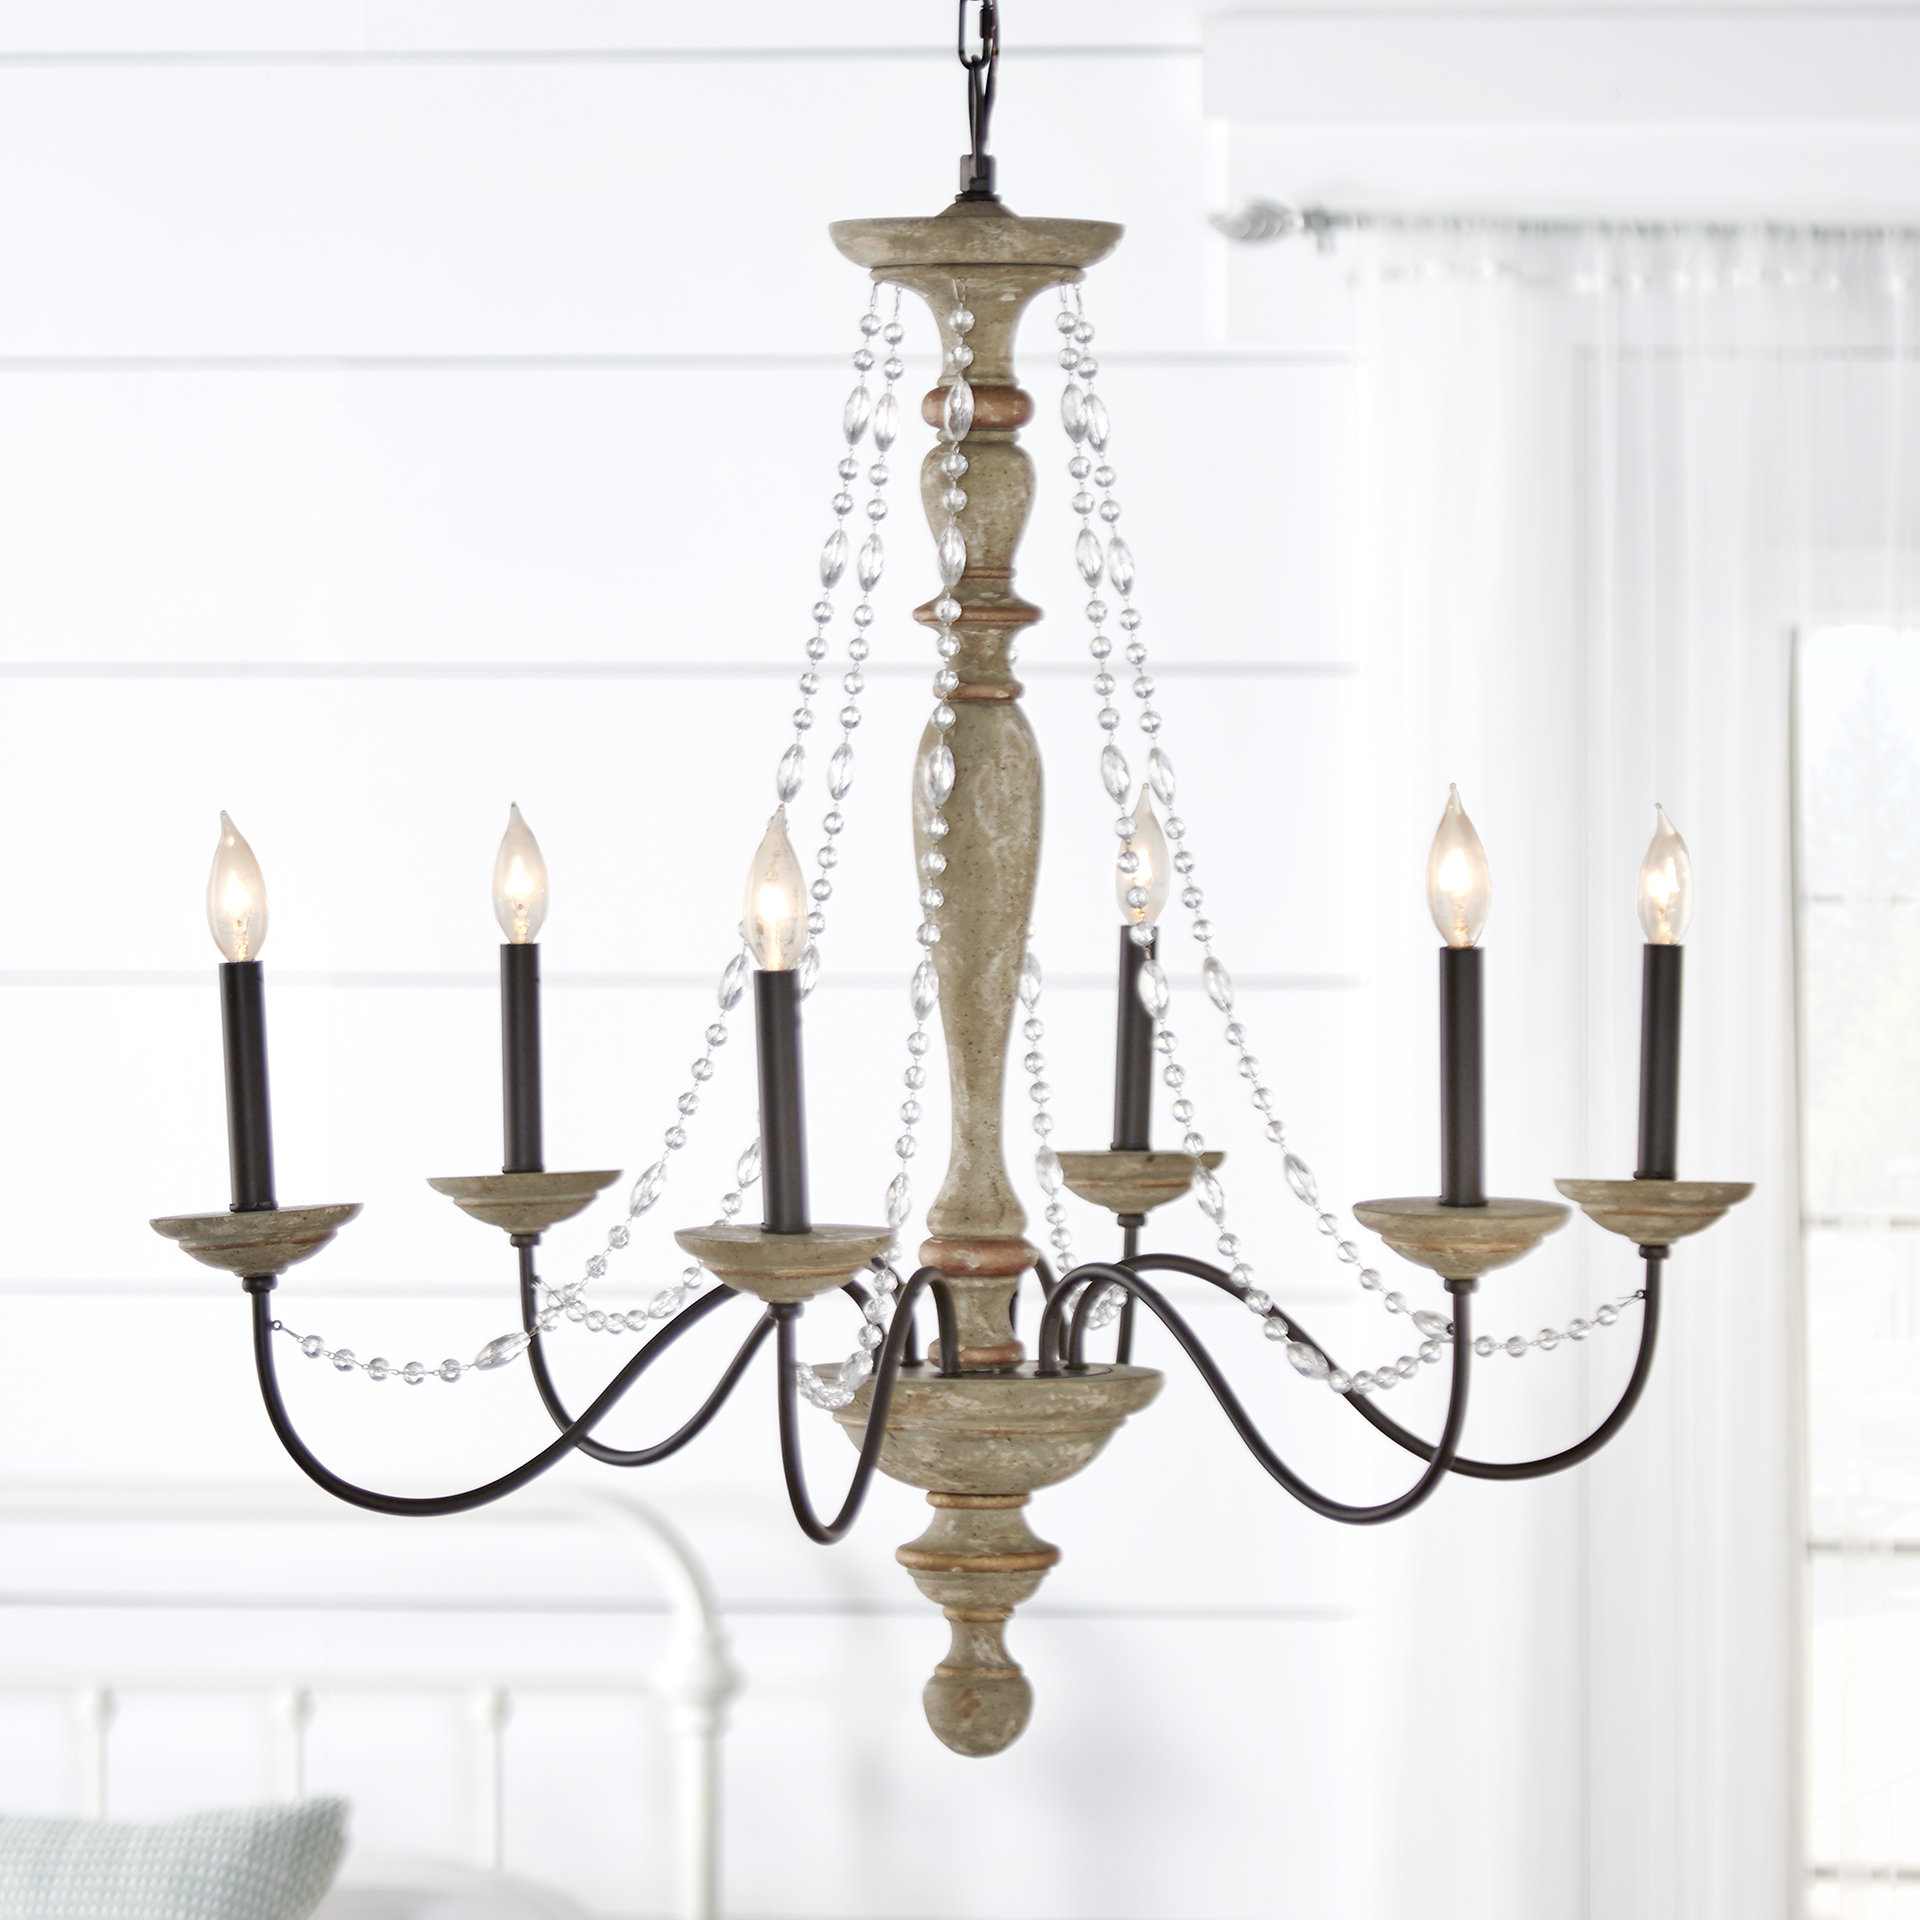 Three Posts Brennon 6 Light Candle Style Chandelier With Regard To Bouchette Traditional 6 Light Candle Style Chandeliers (View 8 of 30)